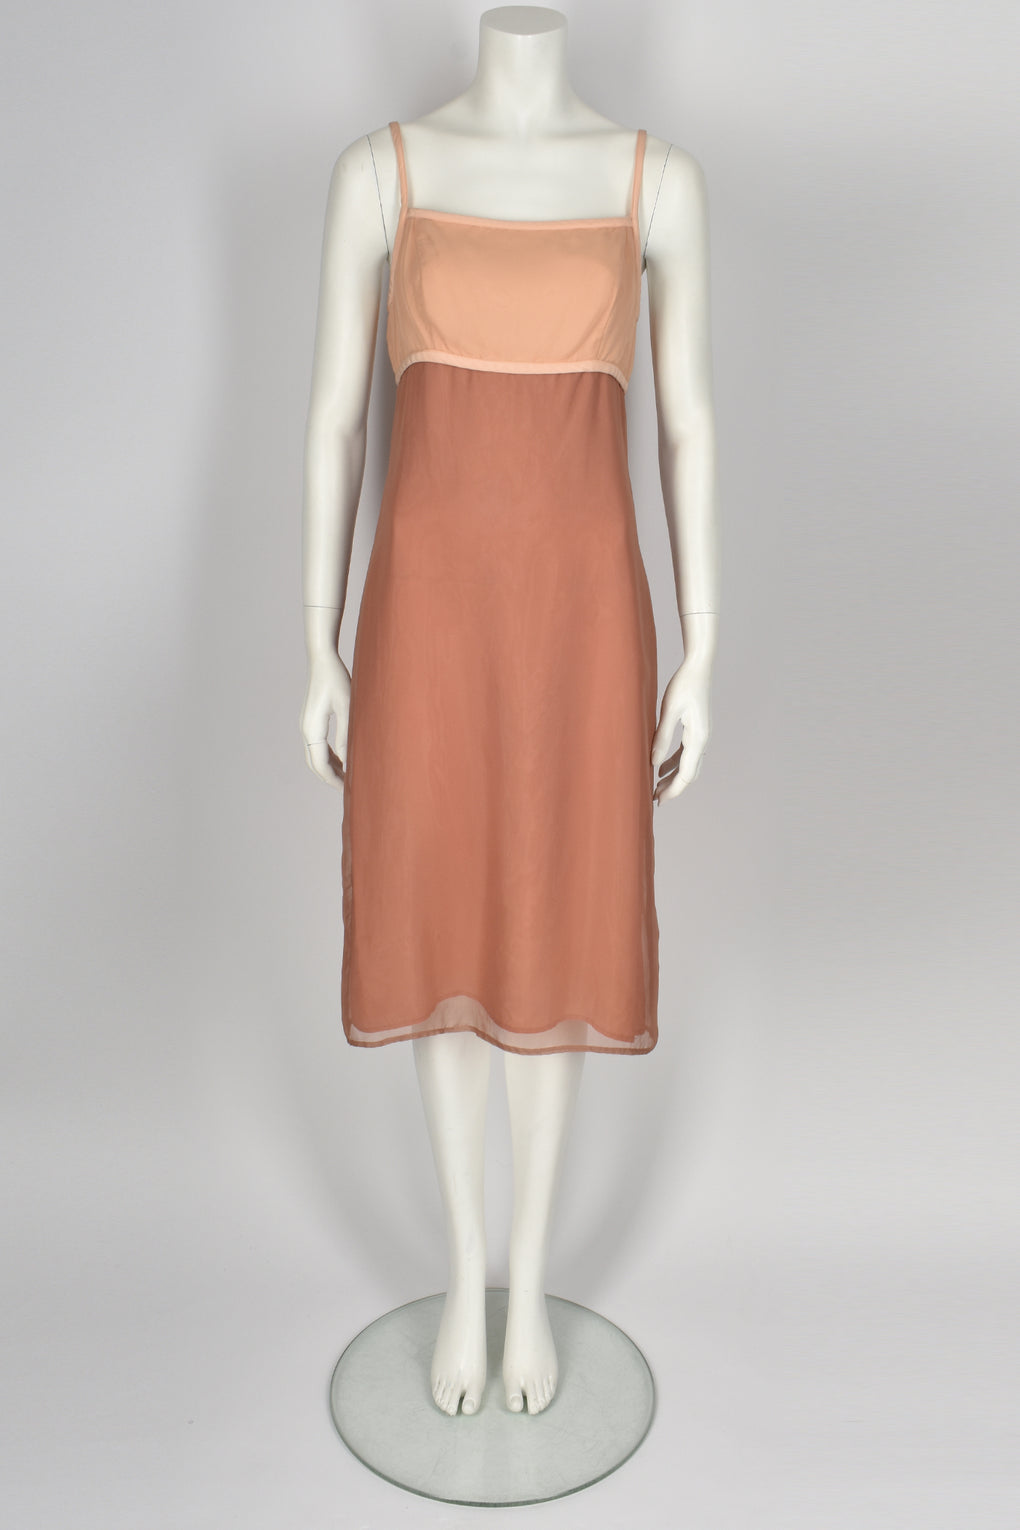 TOCCA 90's nude strappy dress